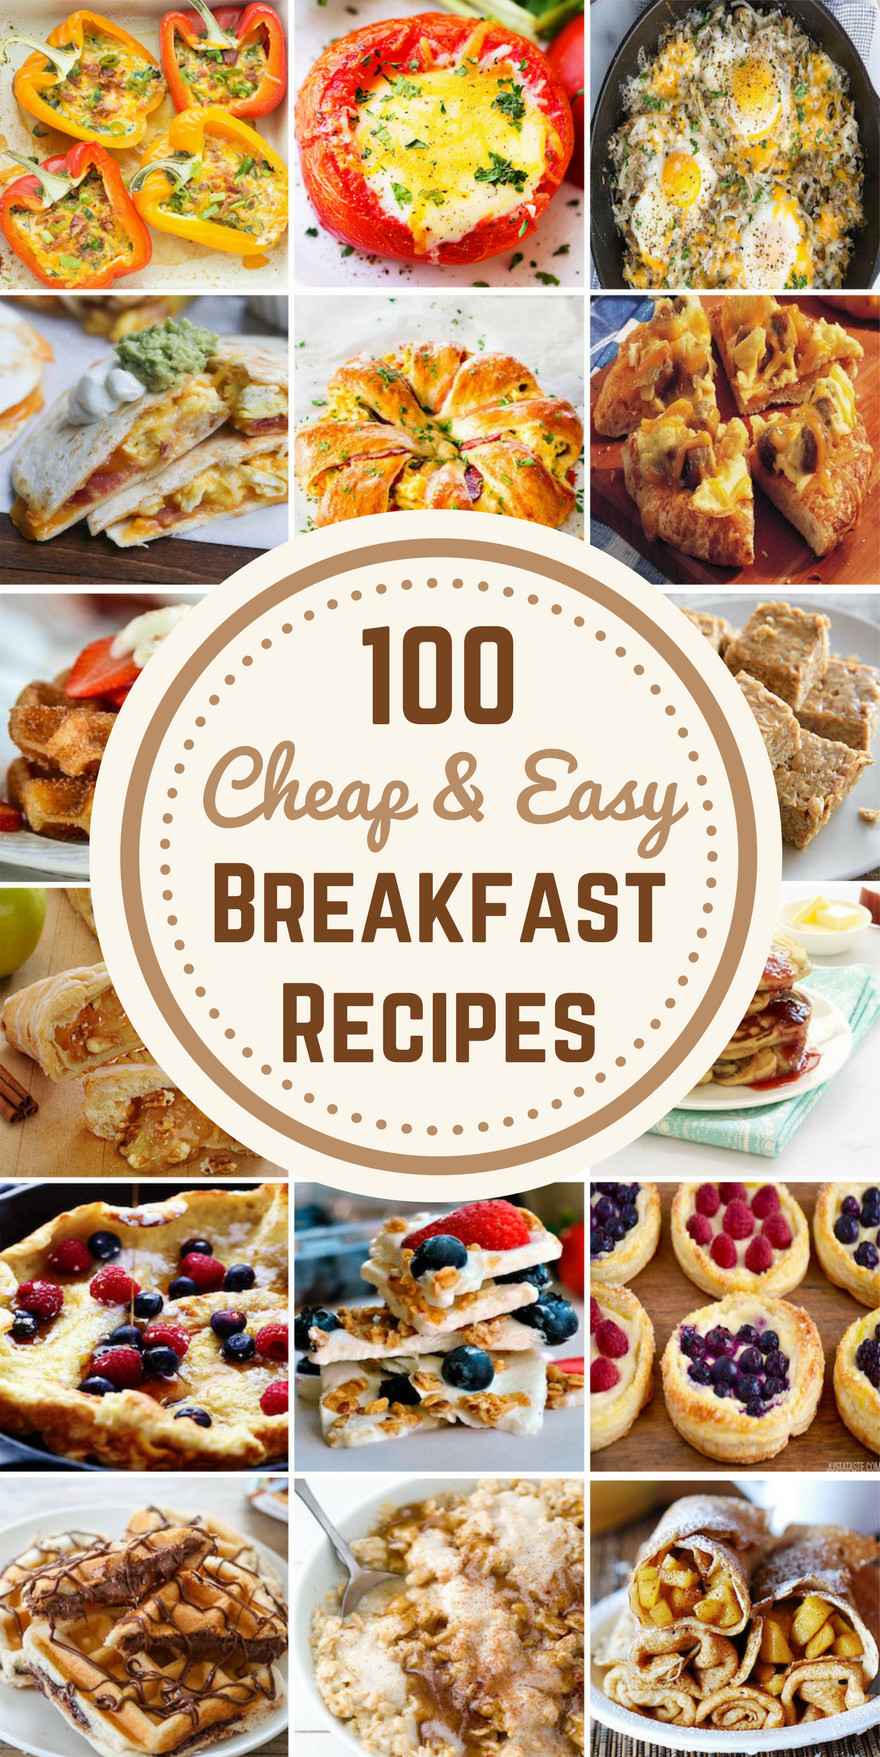 Cheap Breakfast Recipes  100 Cheap & Easy Breakfast Recipes Prudent Penny Pincher